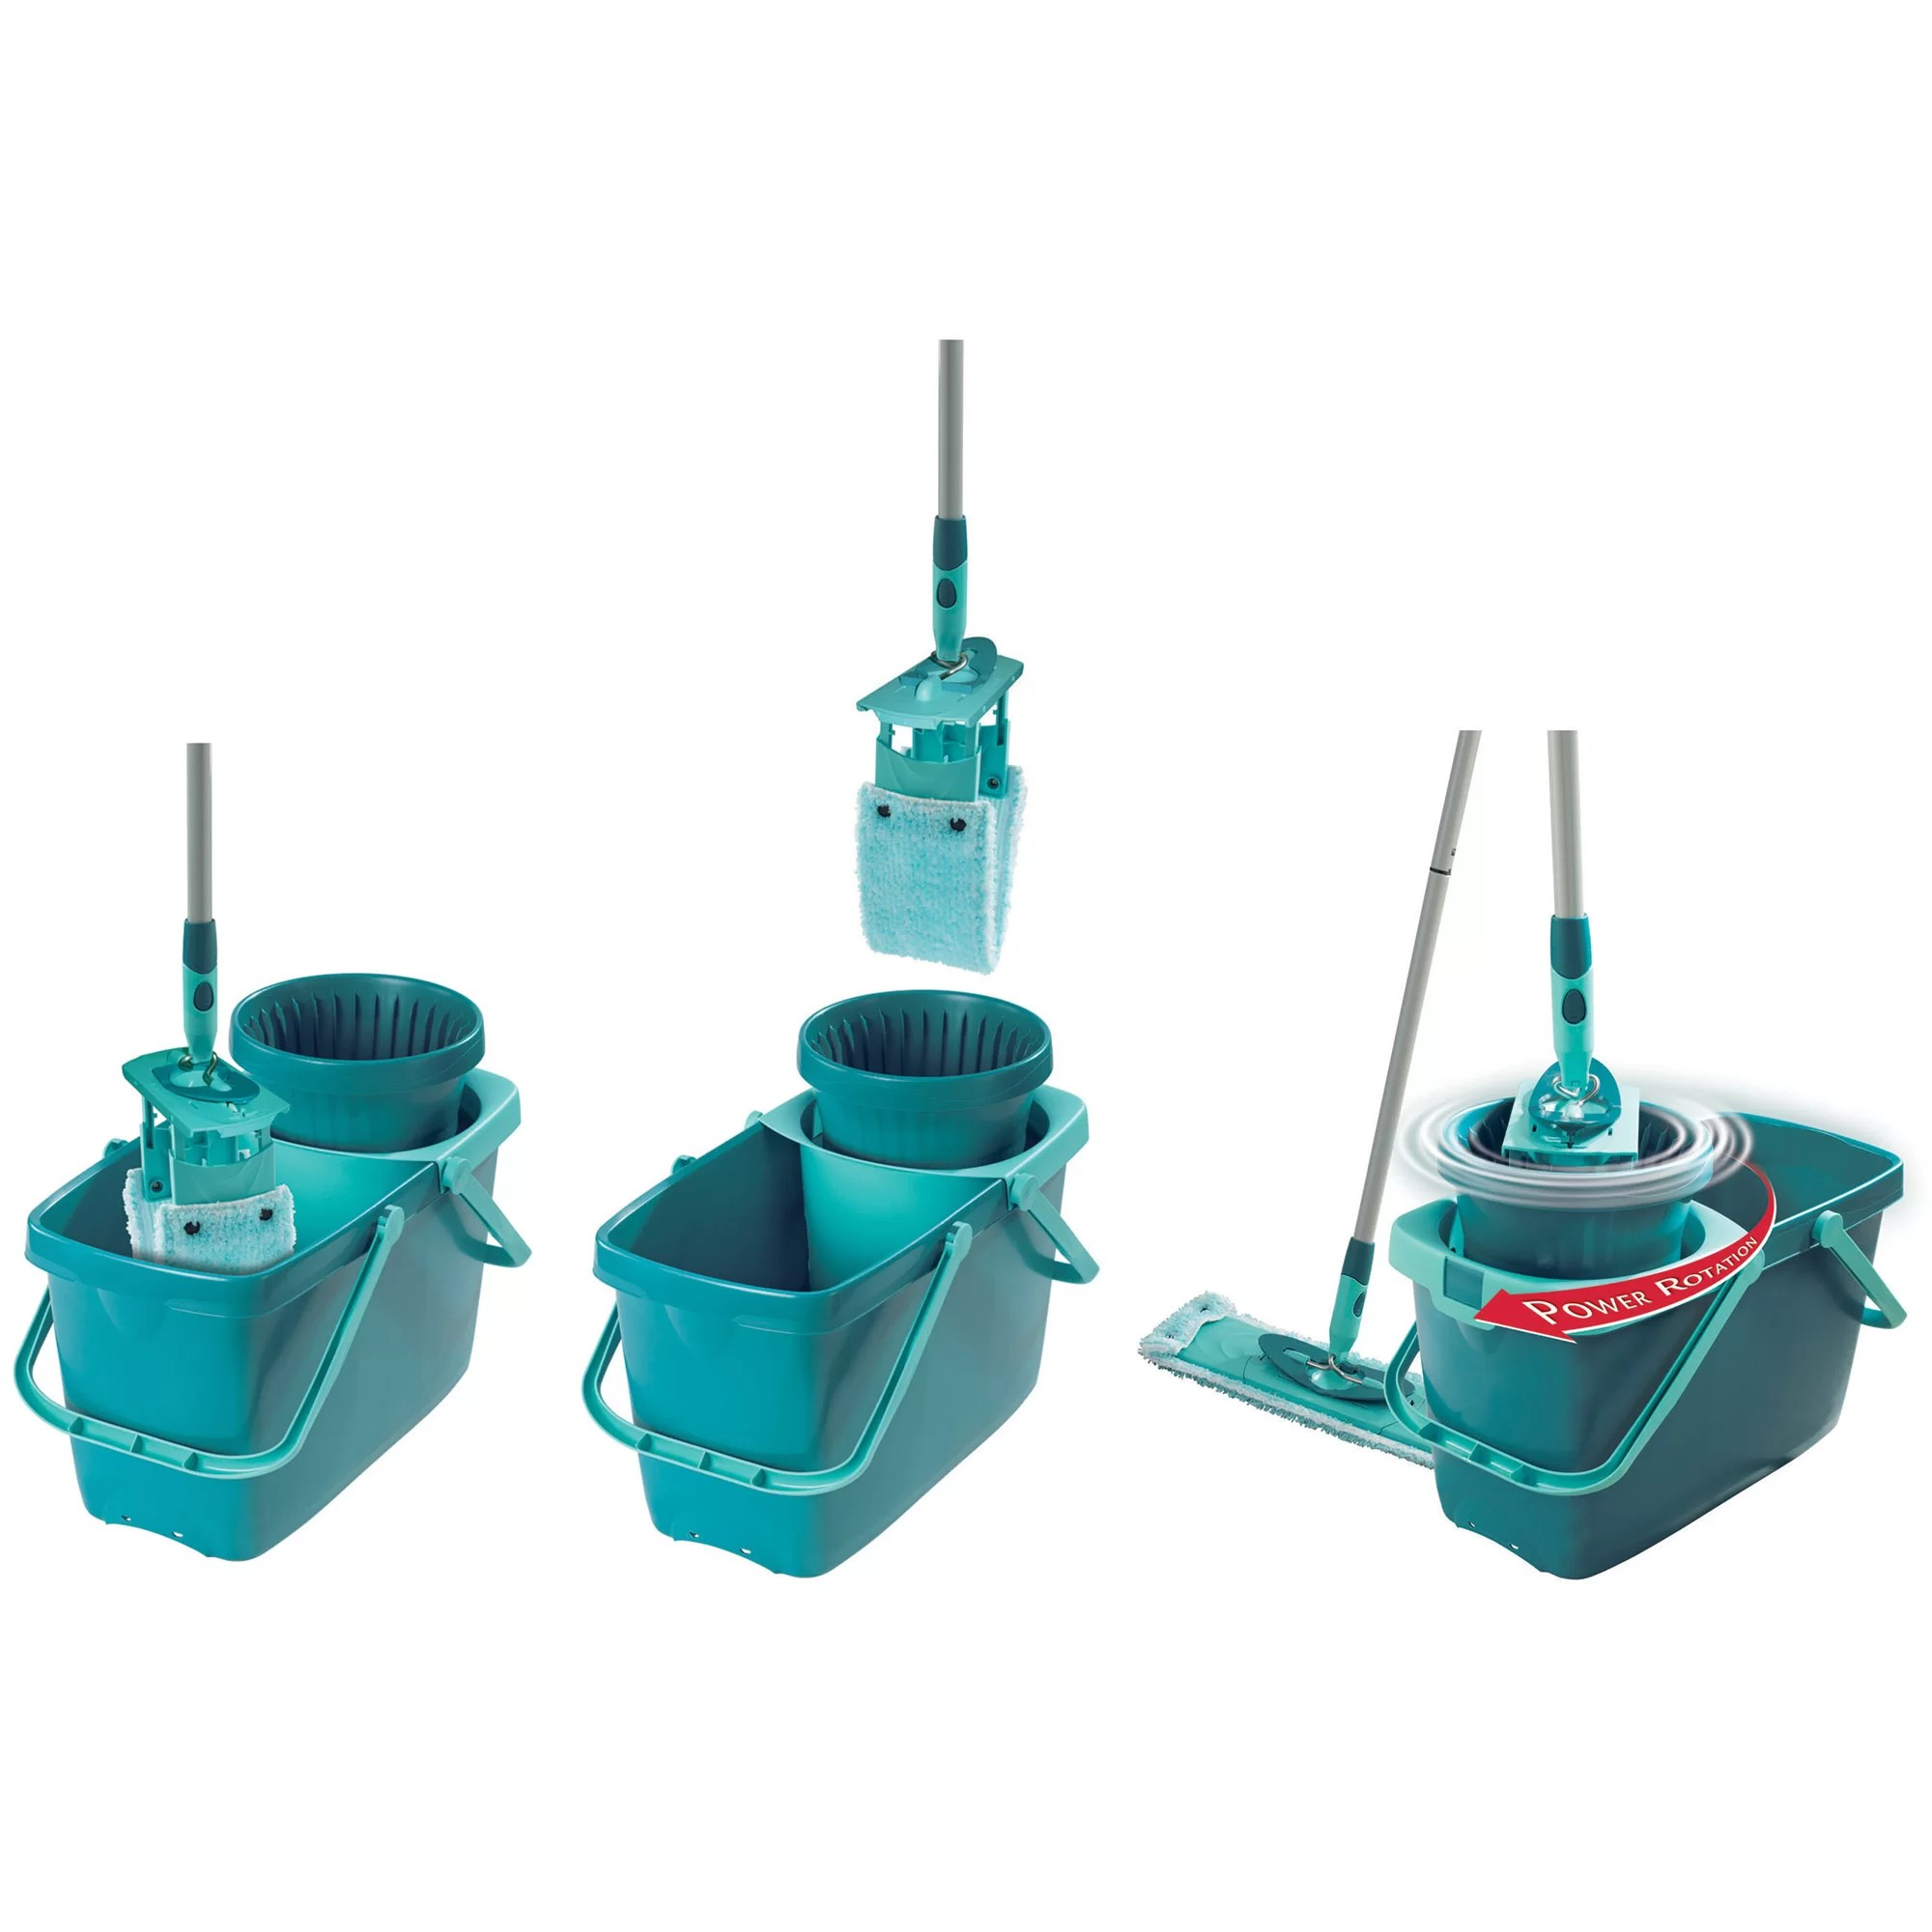 Leifheit Clean Twist Mop Leifheit Clean Twist Xl Rectangular Mop/sweeper Set With